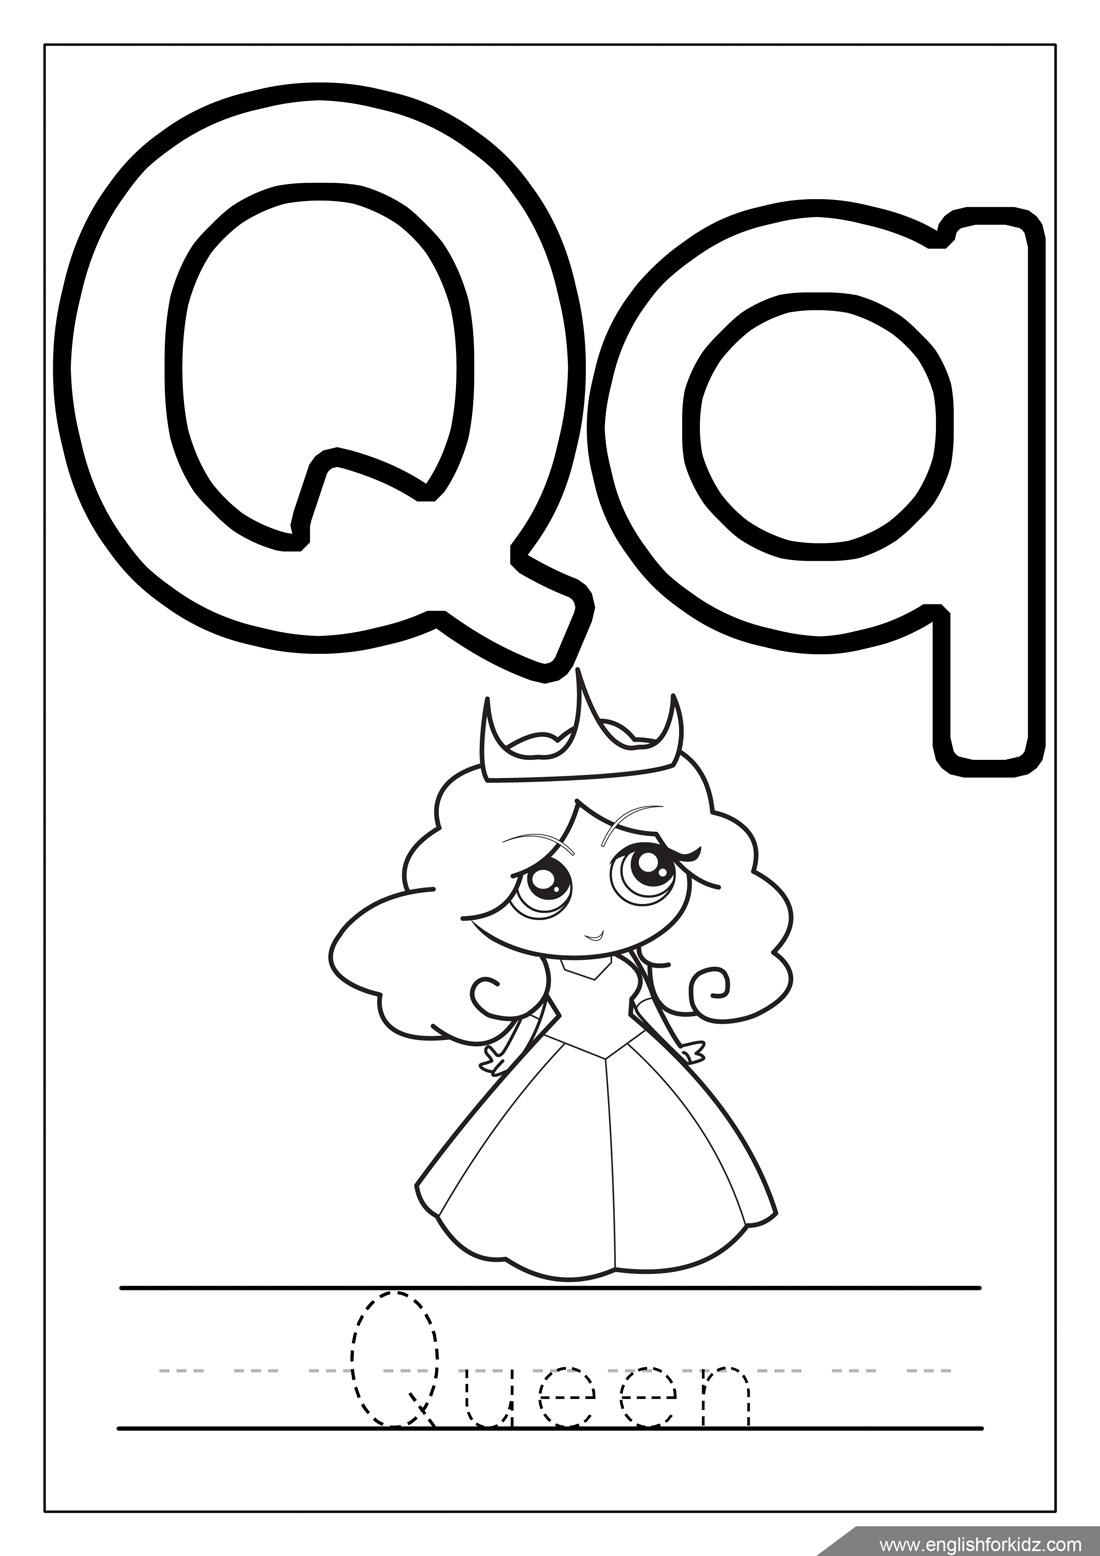 alphabet colouring in get this free preschool letter coloring pages to print oloev in alphabet colouring